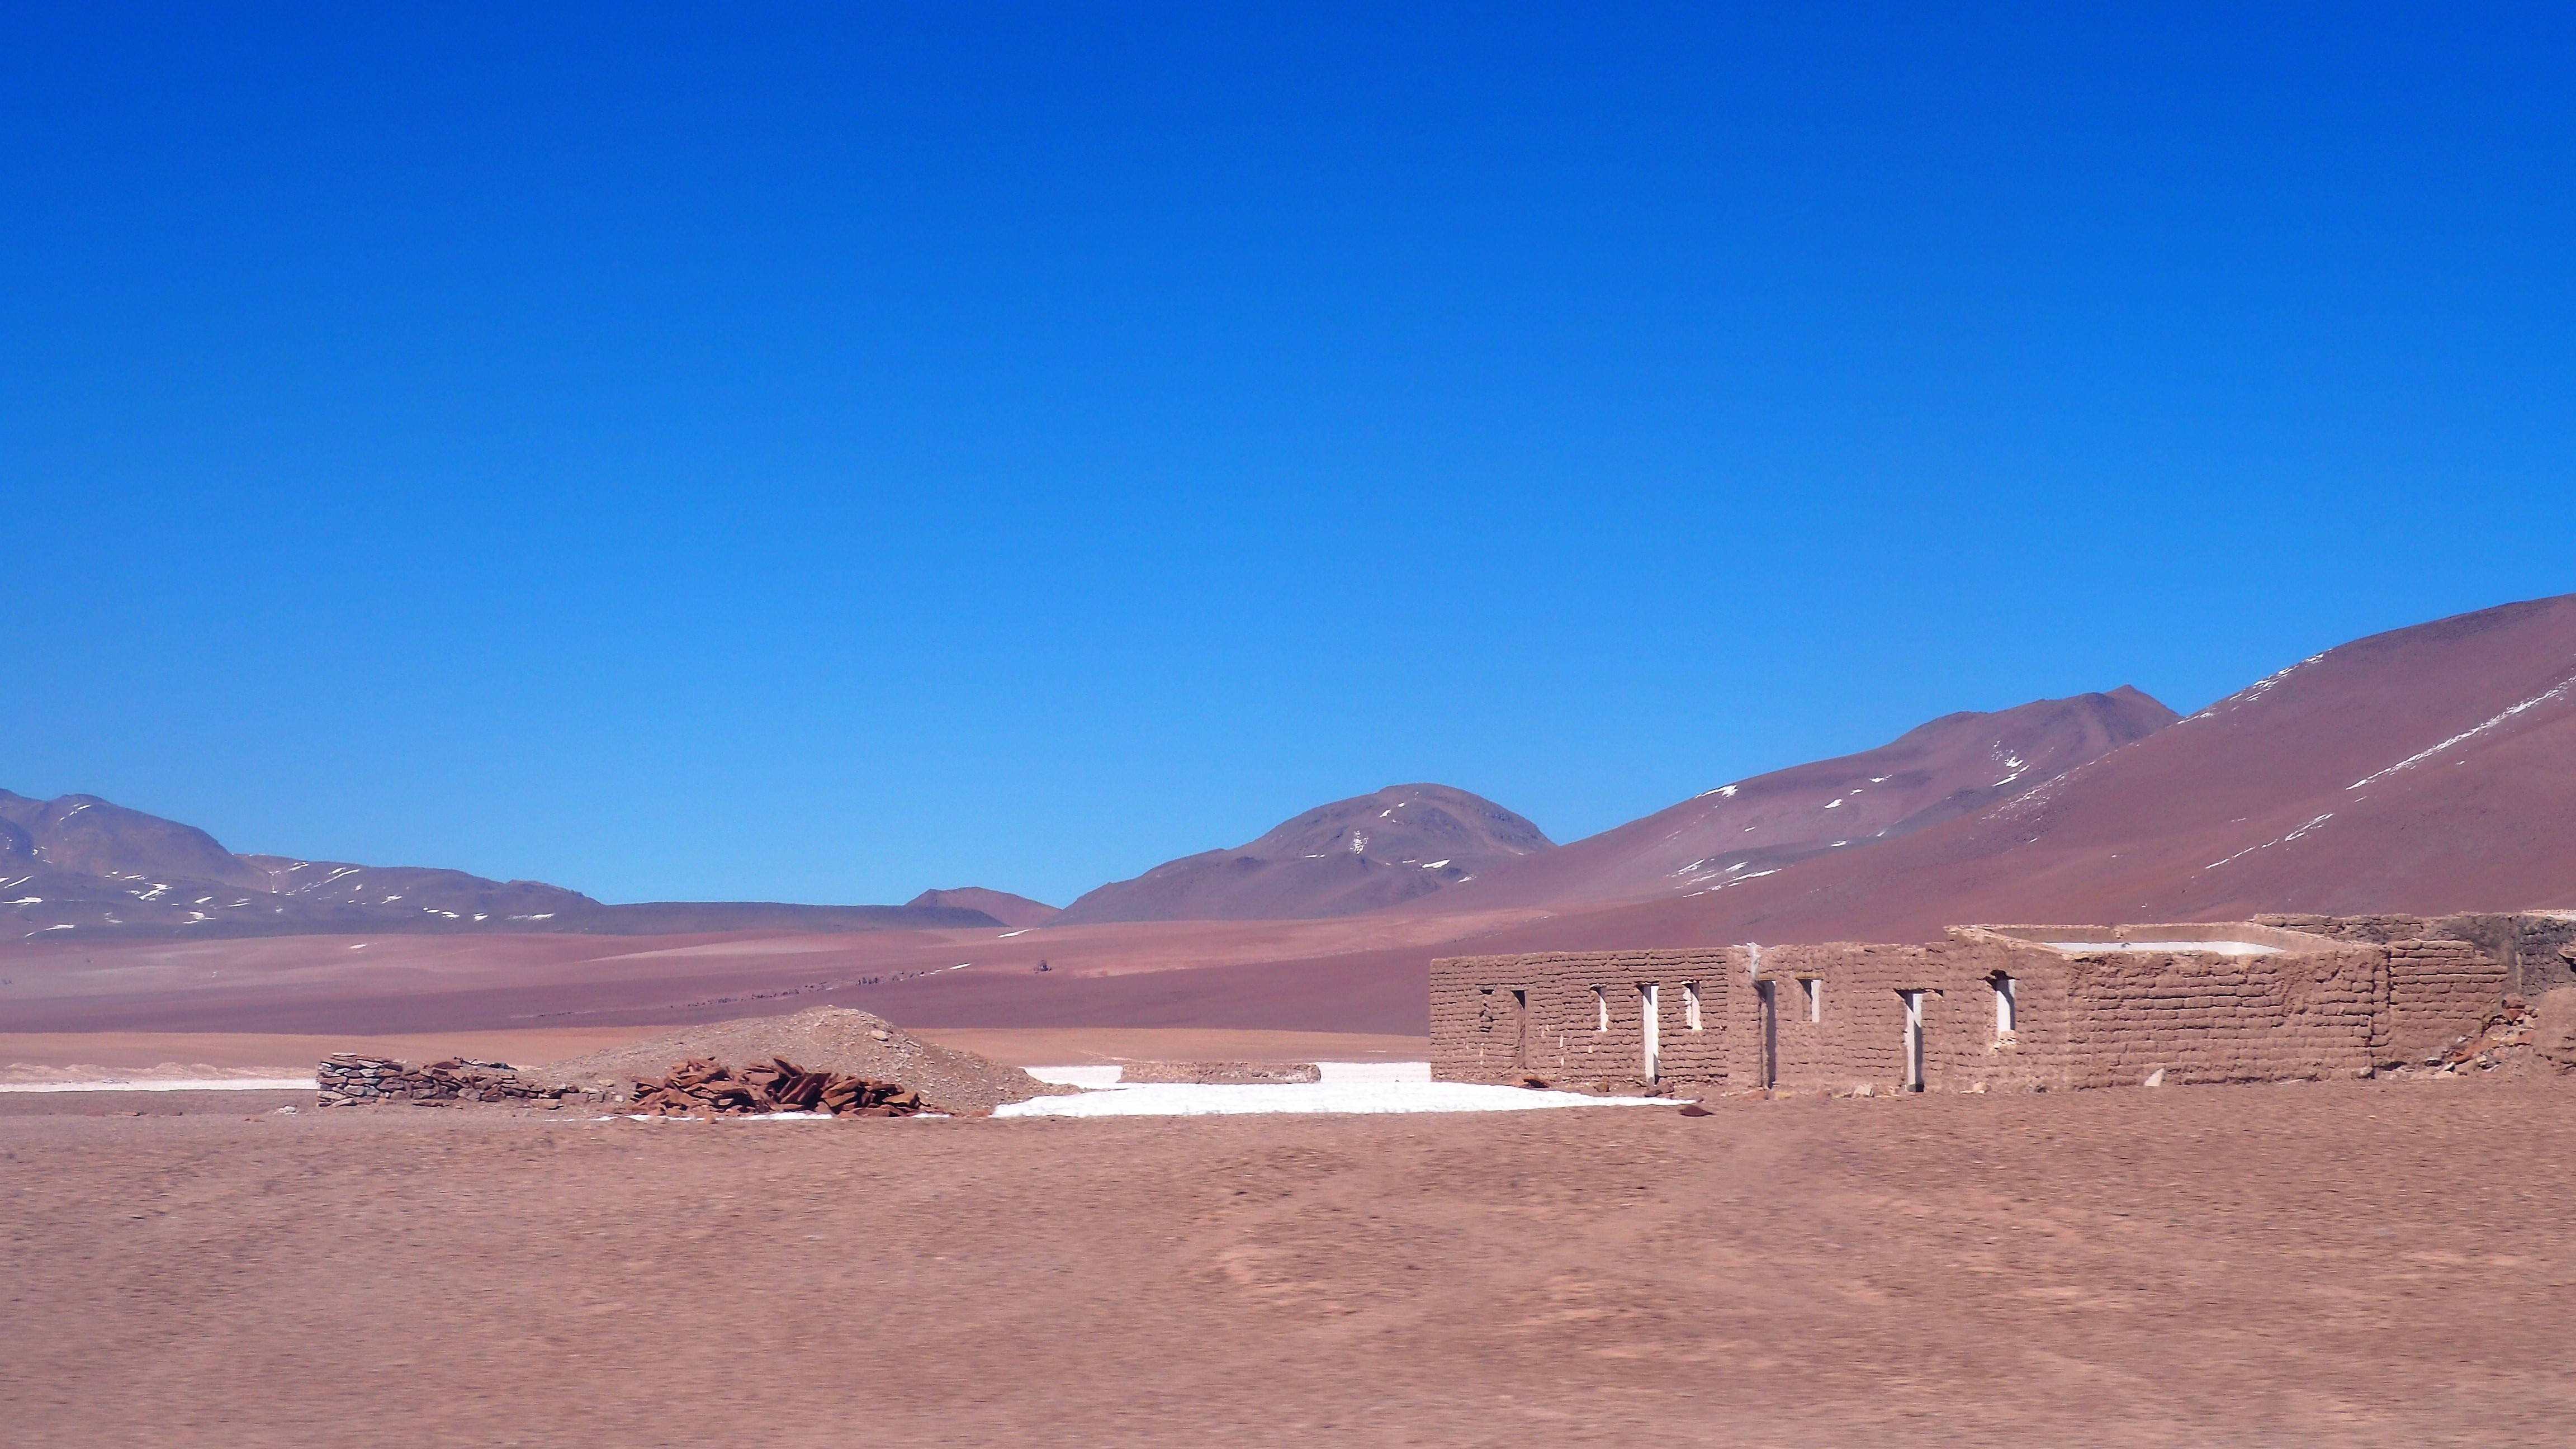 Borax mining on the altiplano